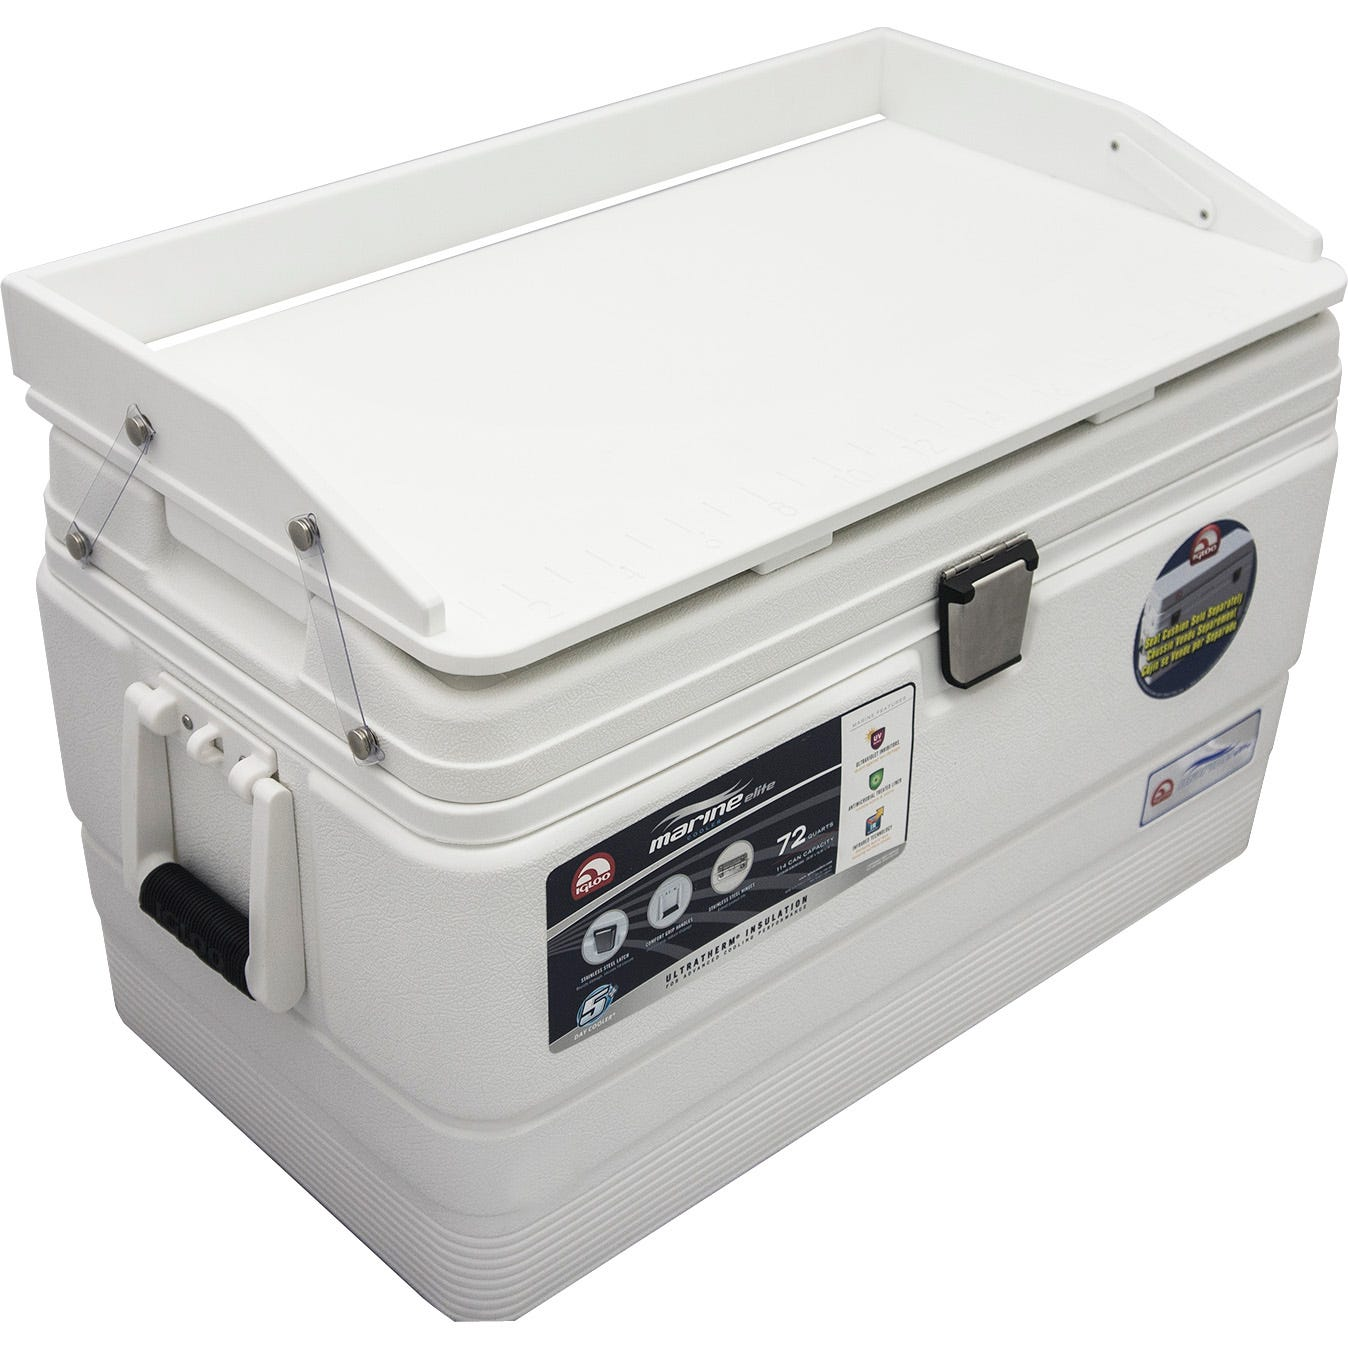 igloo cooler top fillet table boat outfitters marine hardware boating accessories tackle centers